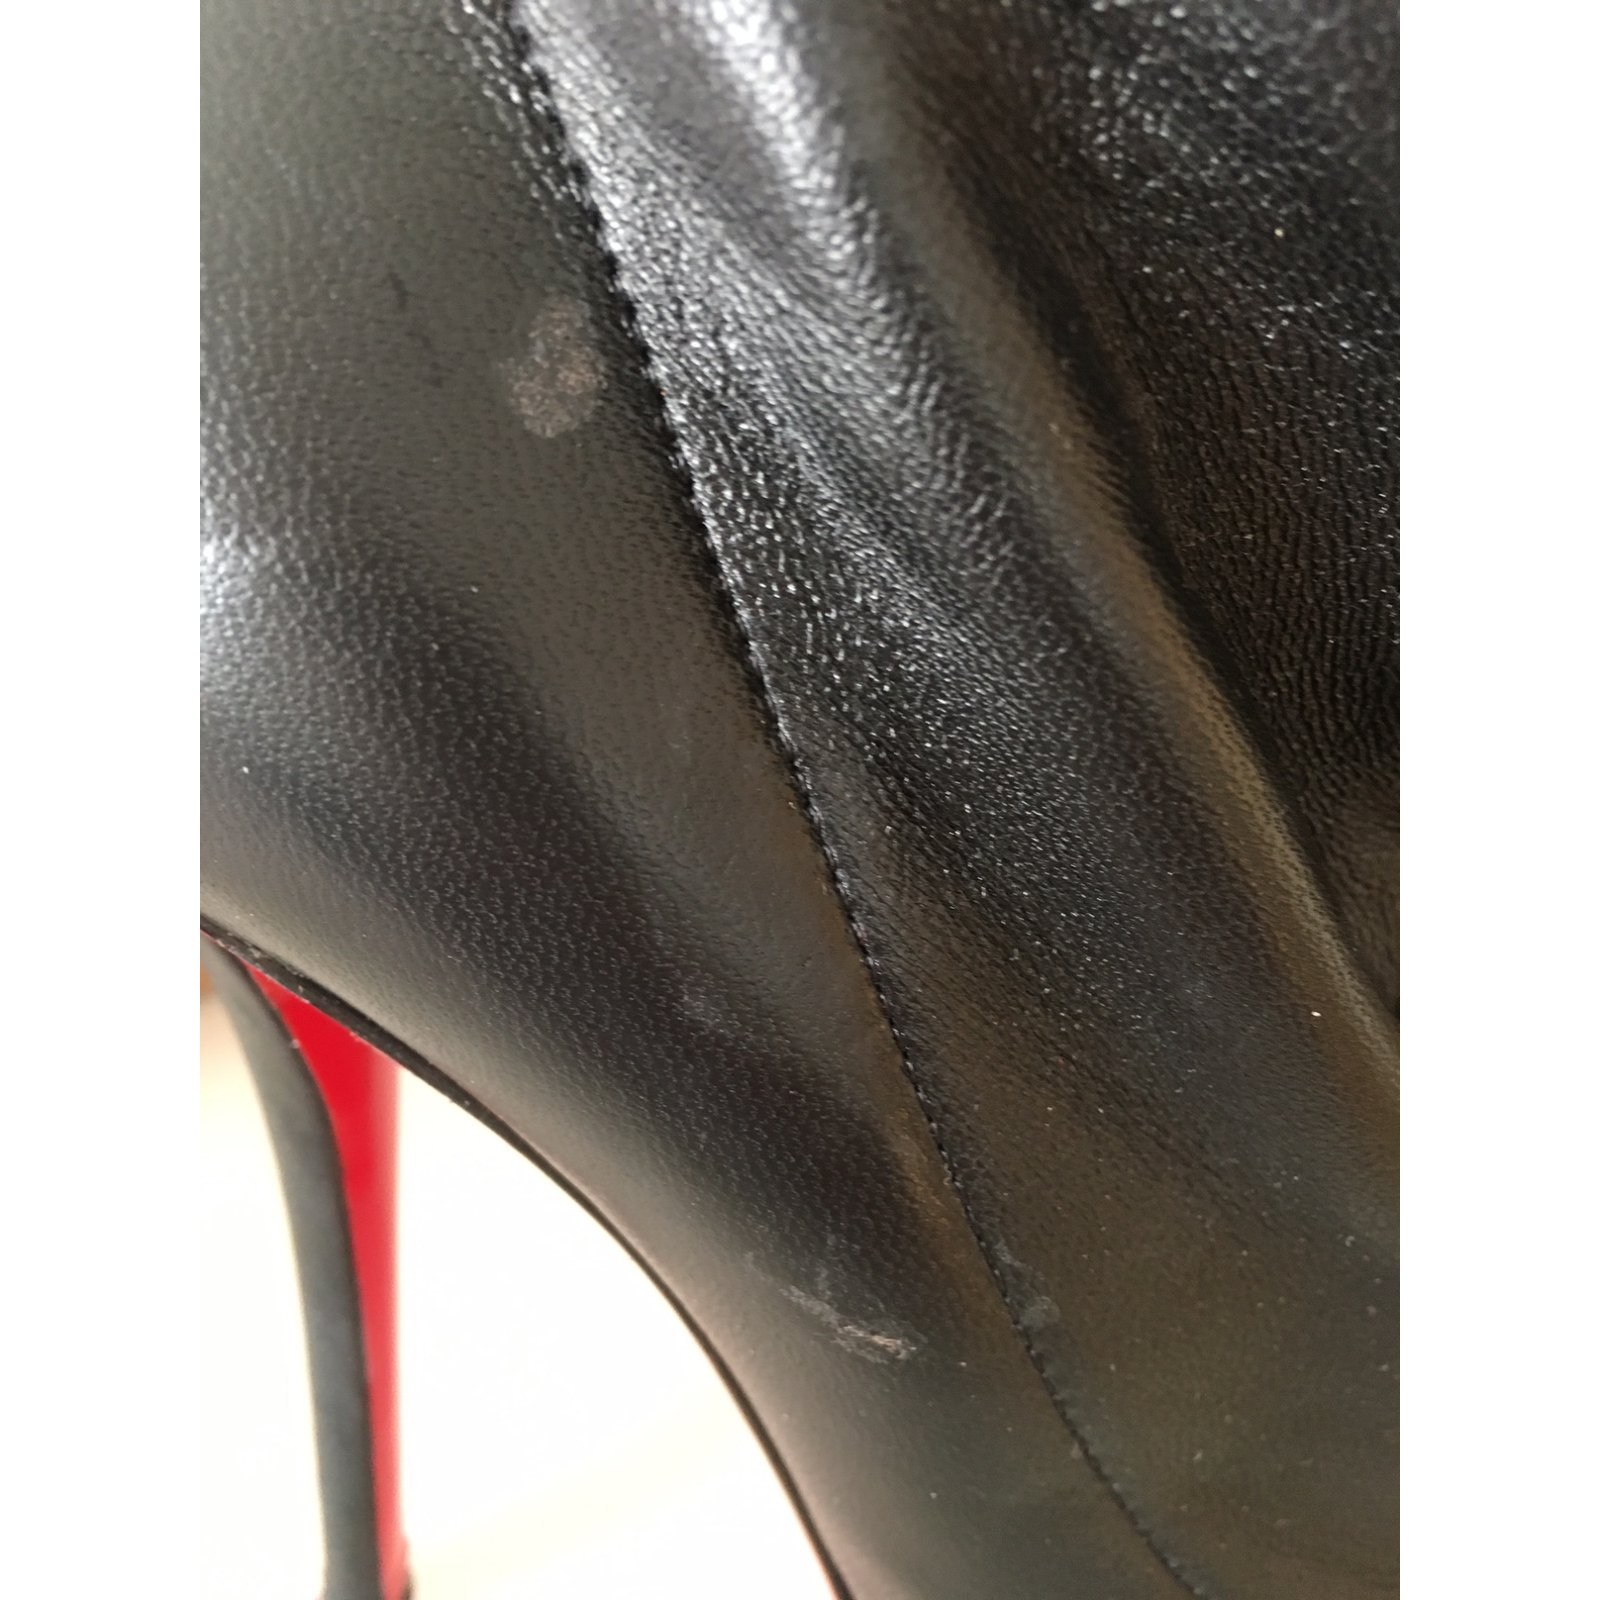 baf6e82a4791 Facebook · Pin This. Christian Louboutin TROOPISTA 120 NAPPA Boots Leather Black  ref.37442. Christian Louboutin TROOPISTA 120 ...